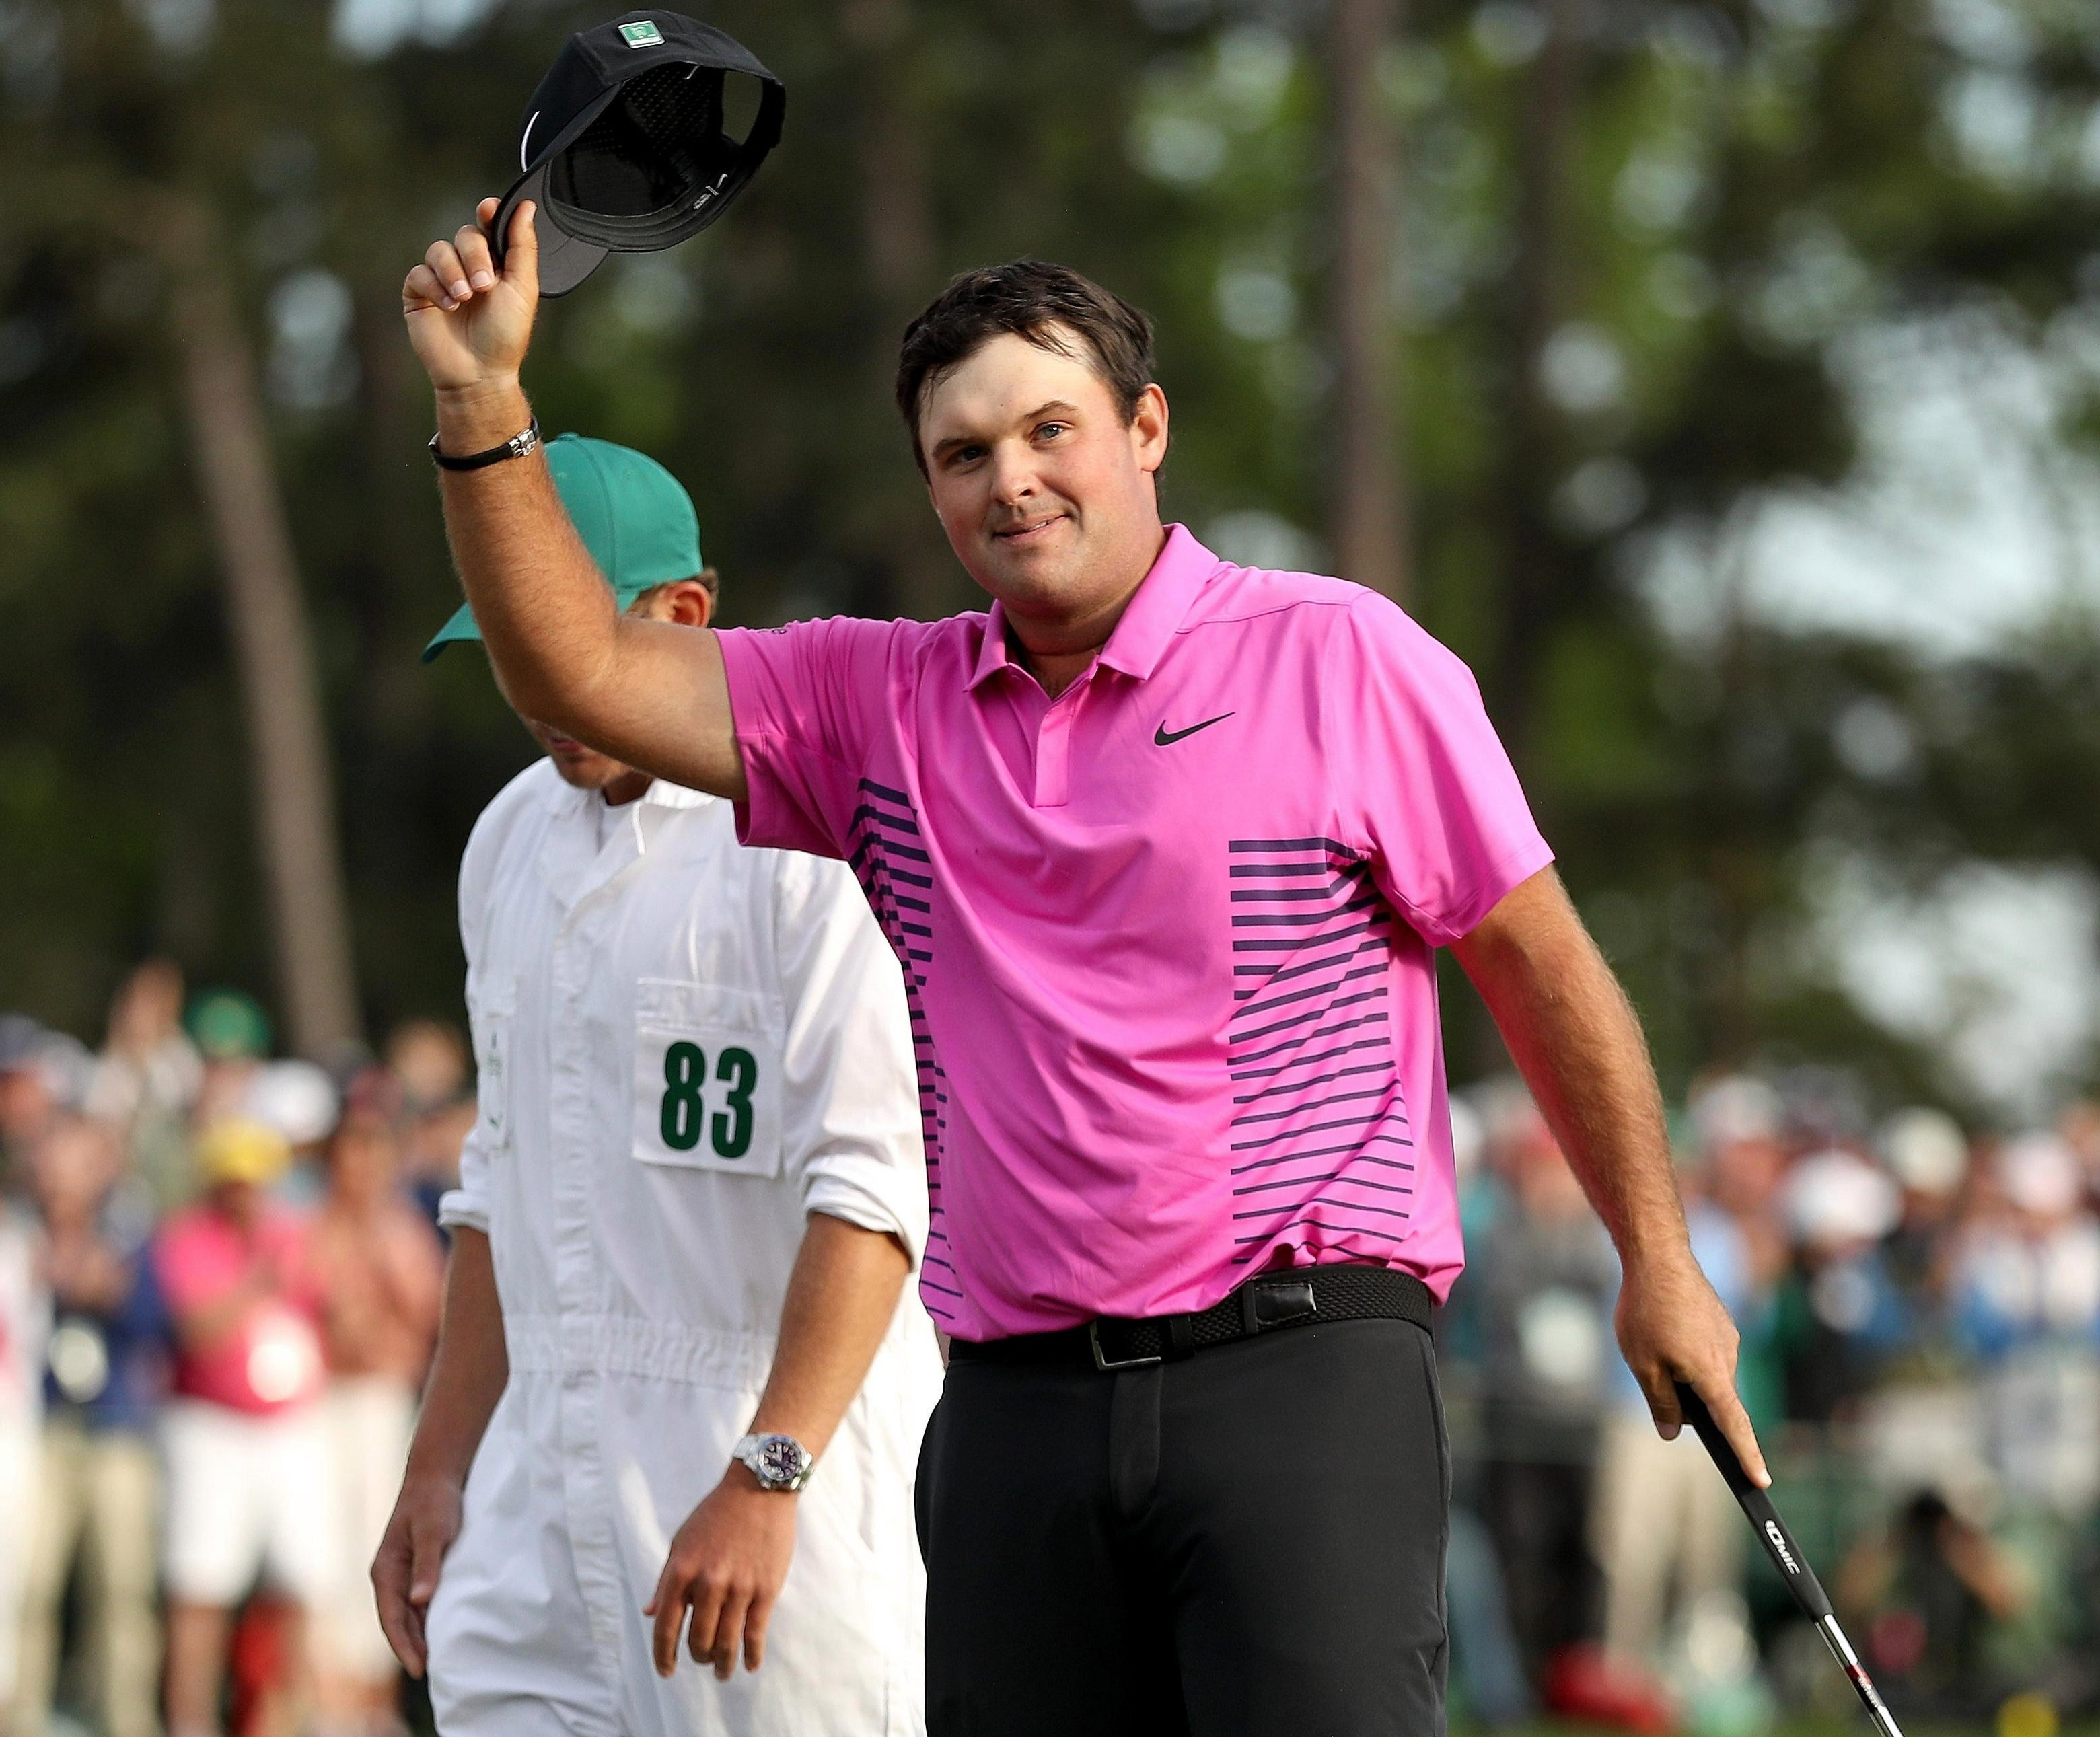 Patrick Reed was amazing in the Ryder Cup and now he has a Major to his name too